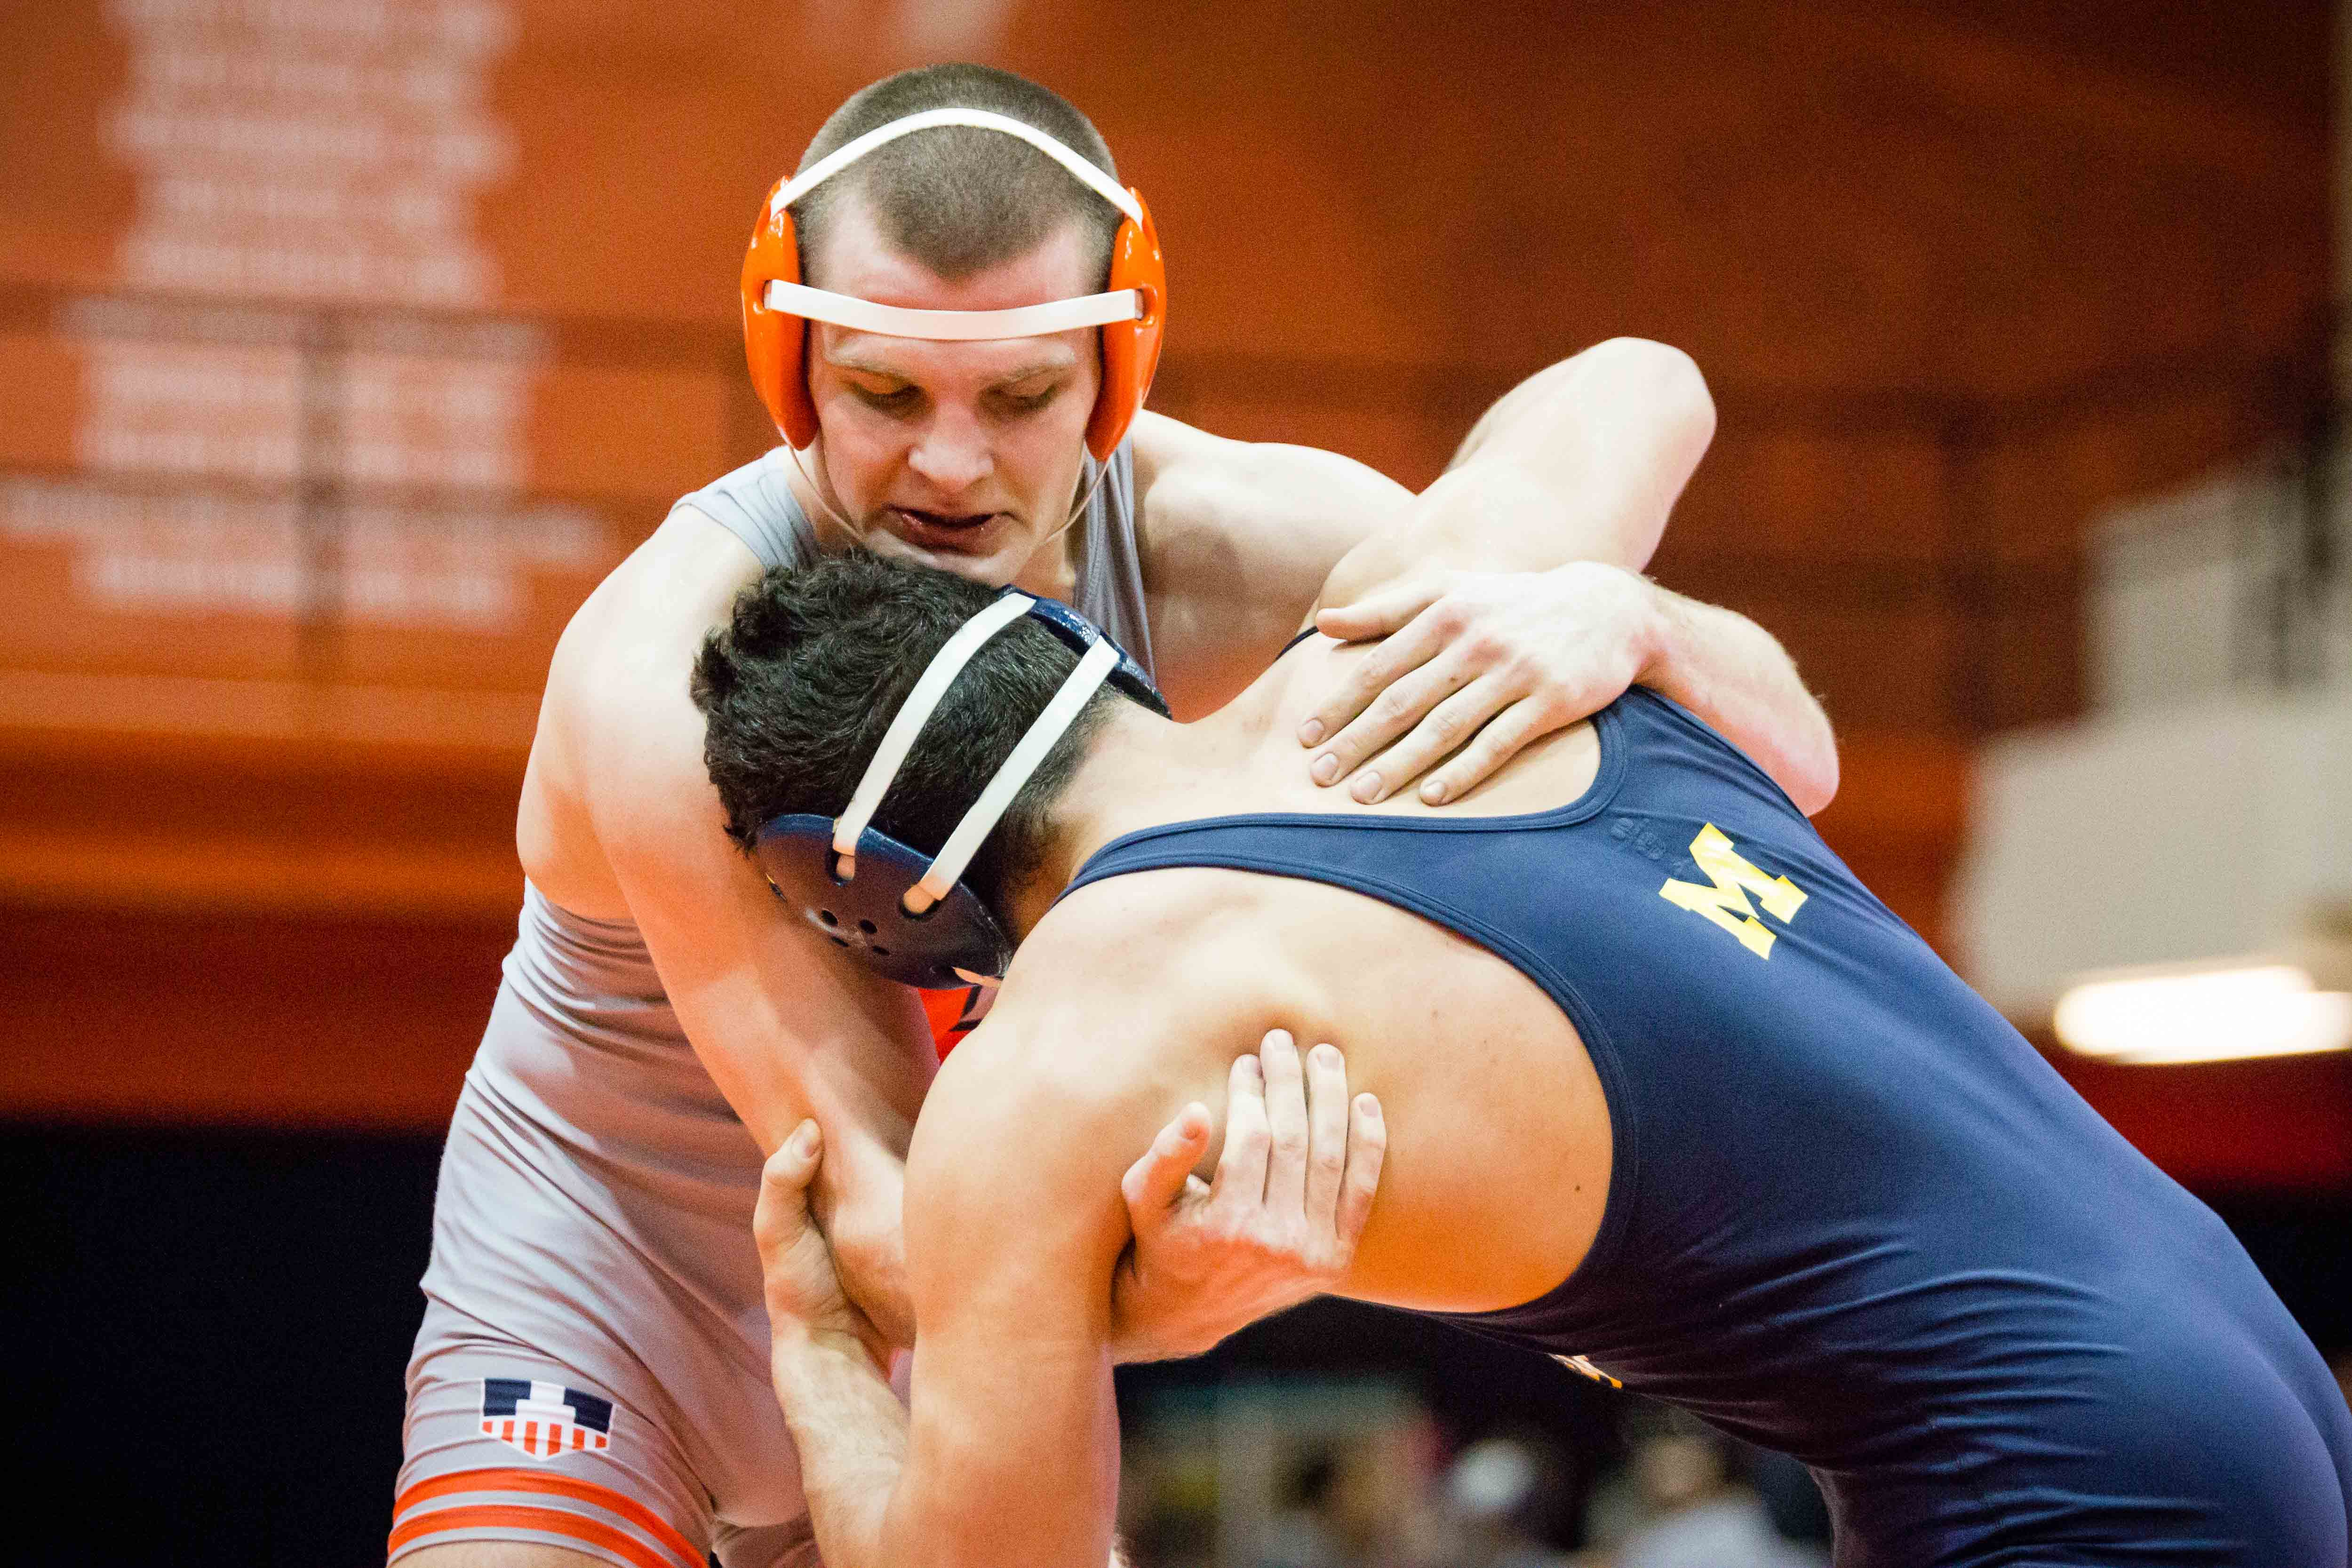 Illinois' Zac Brunson wrestles with Michigan's Myles Amine in the 174 pound weight class during the match at Huff Hall on Friday, Jan. 20. Brunson celebrated his 100th win against Indiana from his final home match Sunday. The Illini ended the regular season 9-3, 6-3.